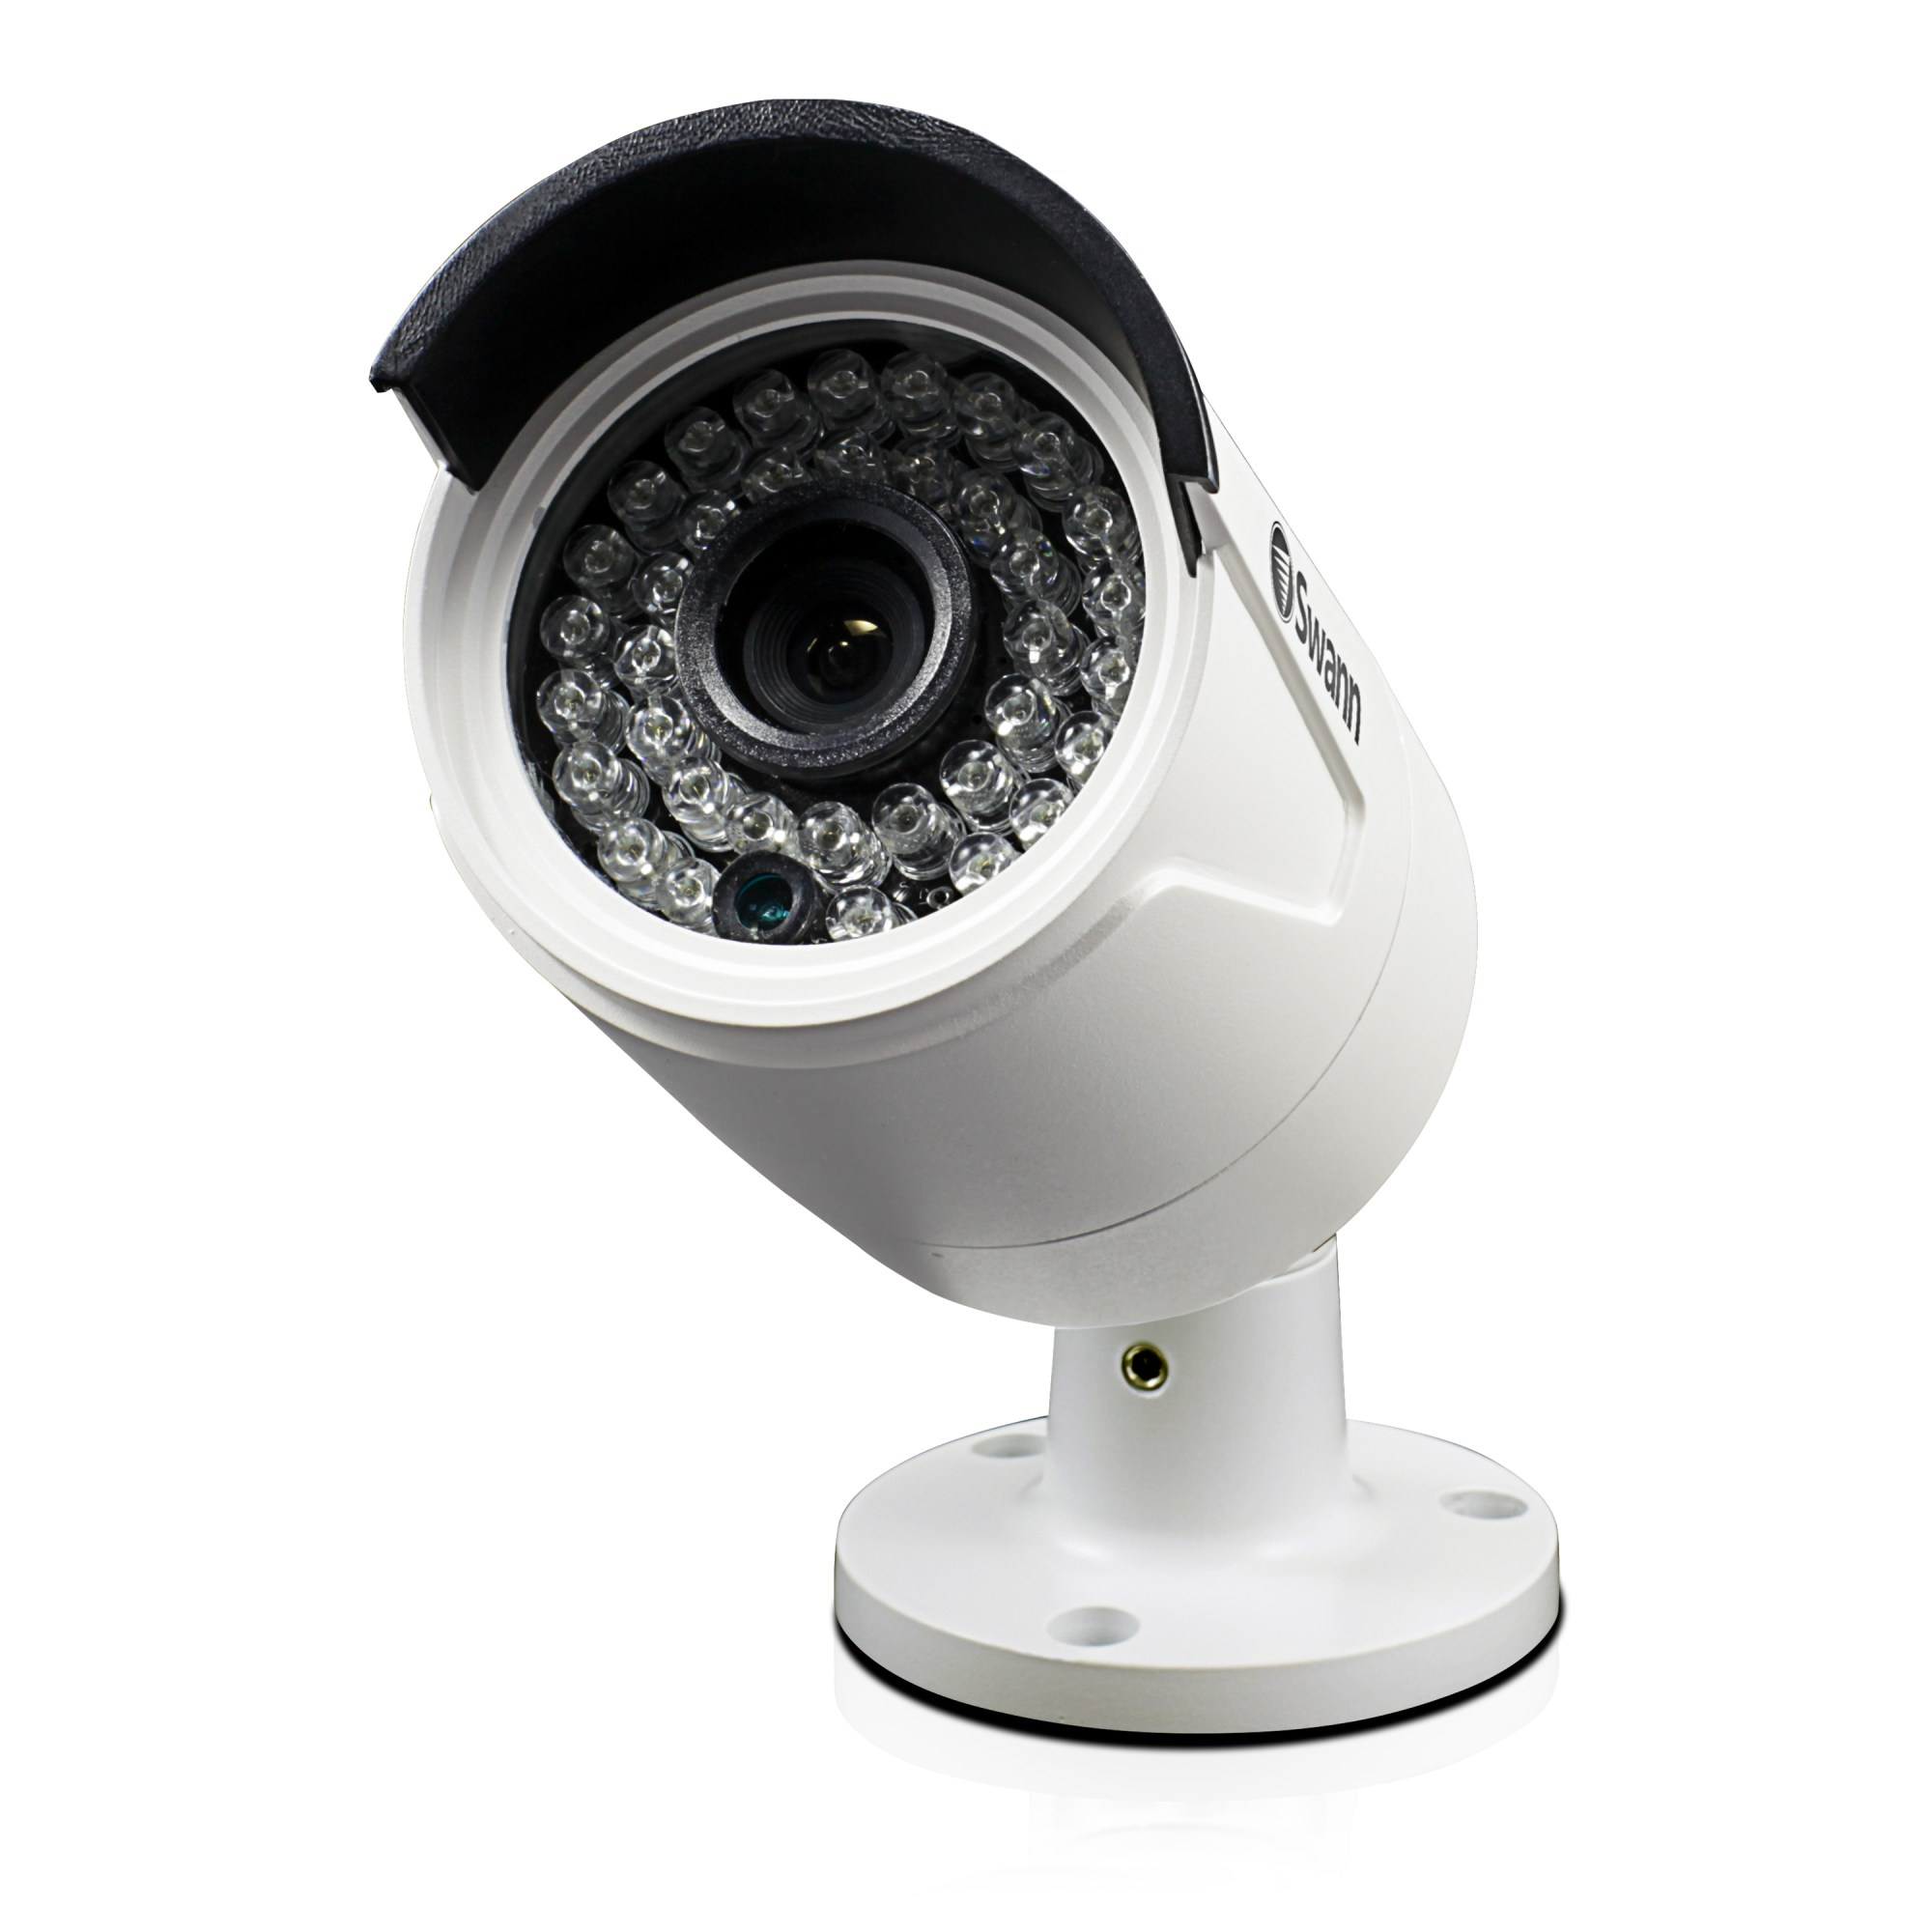 hight resolution of nhd 818 4mp super hd day night security camera night vision 100ft 30m